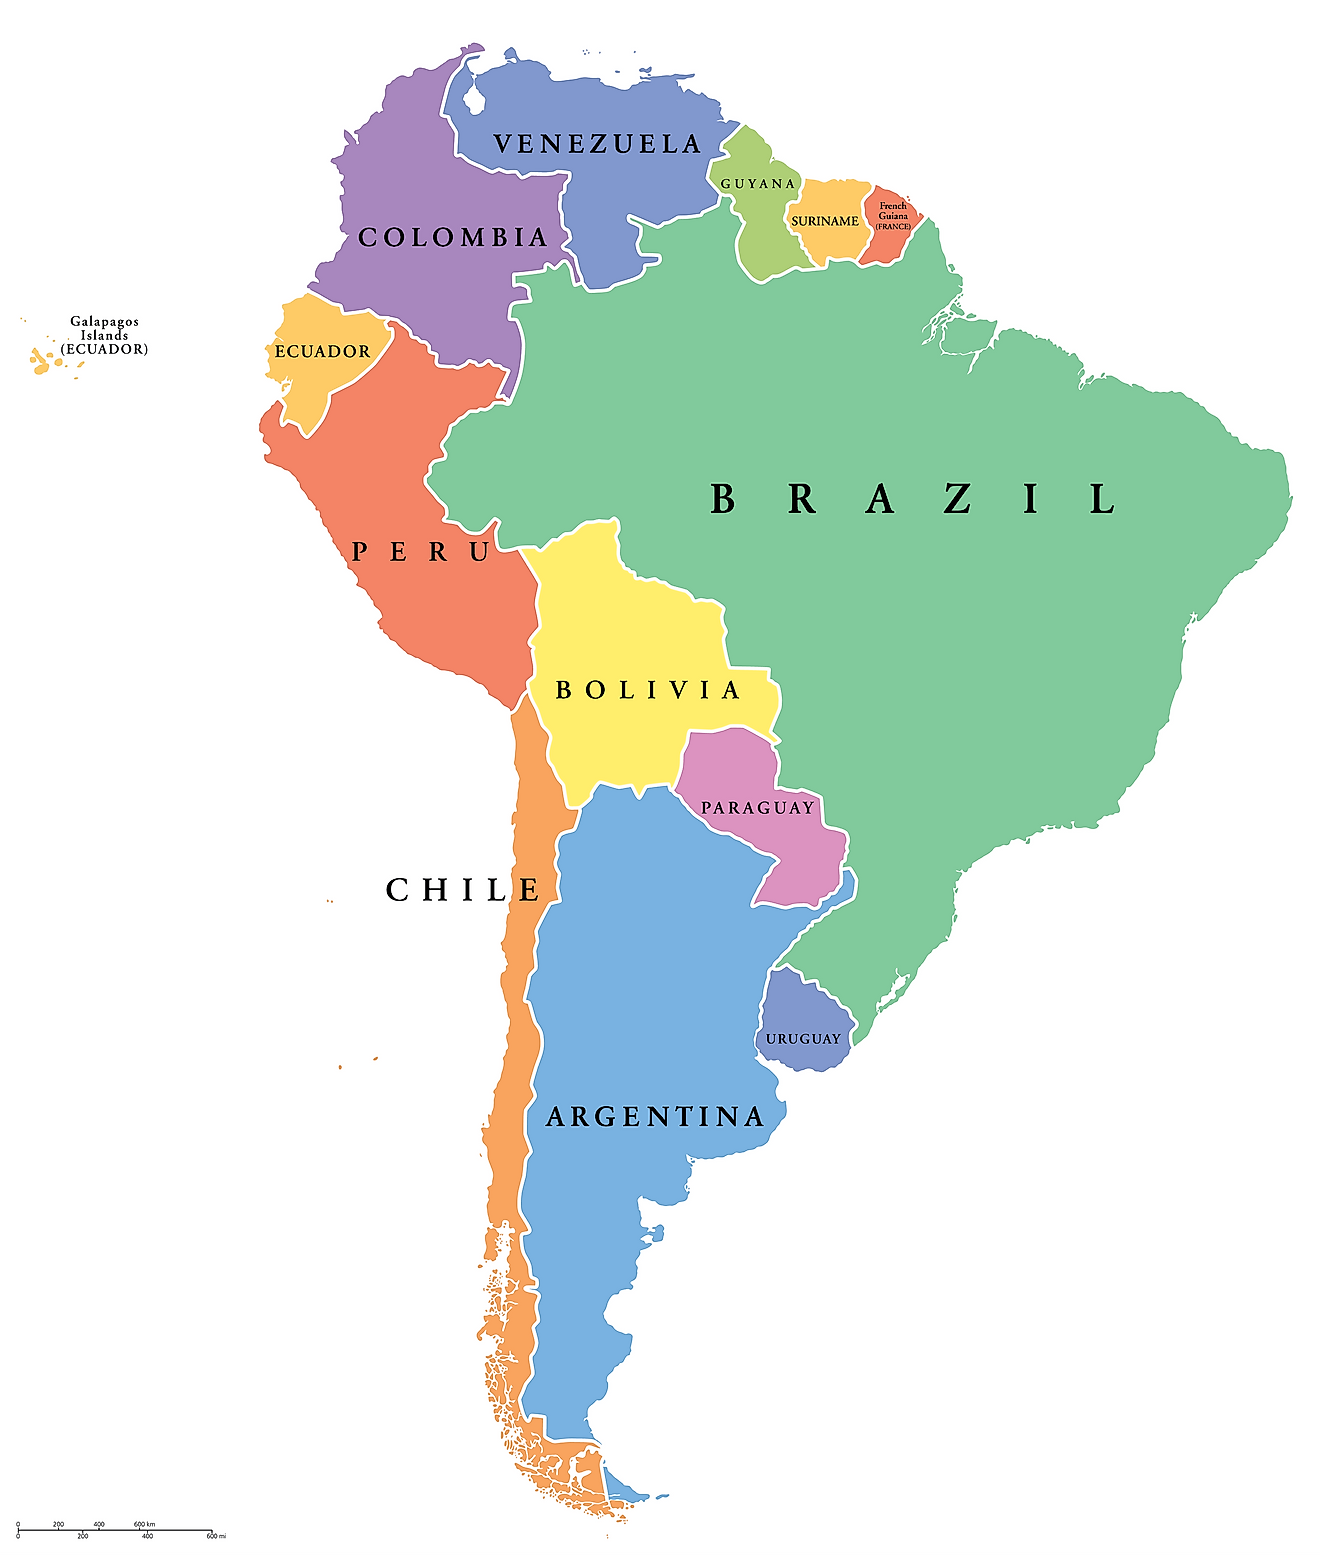 How Many Countries Are There In South America?